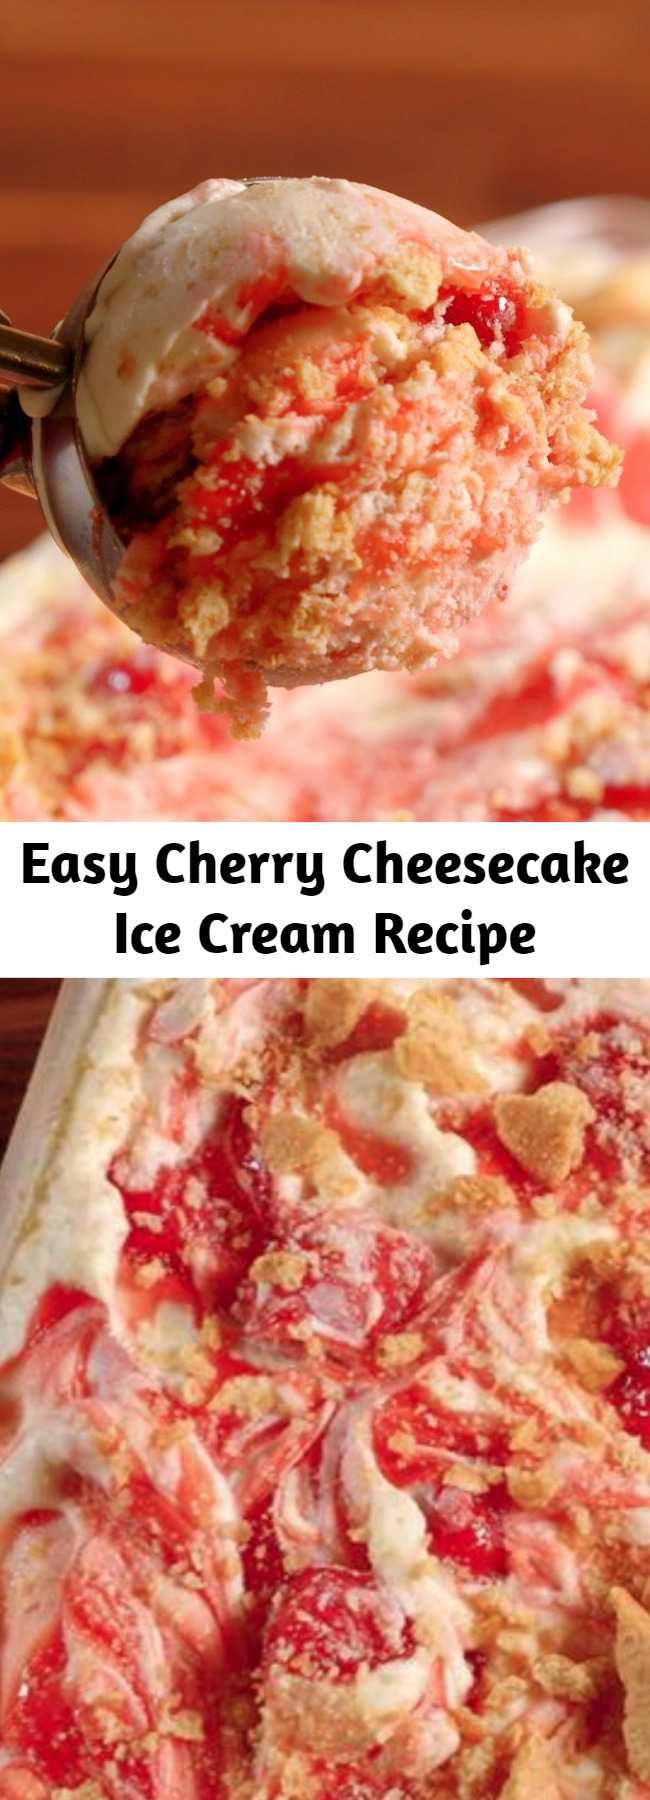 Easy Cherry Cheesecake Ice Cream Recipe - Check out this easy (no churn!) recipe for cherry cheesecake ice cream. It's even better than cherry pie a la mode!